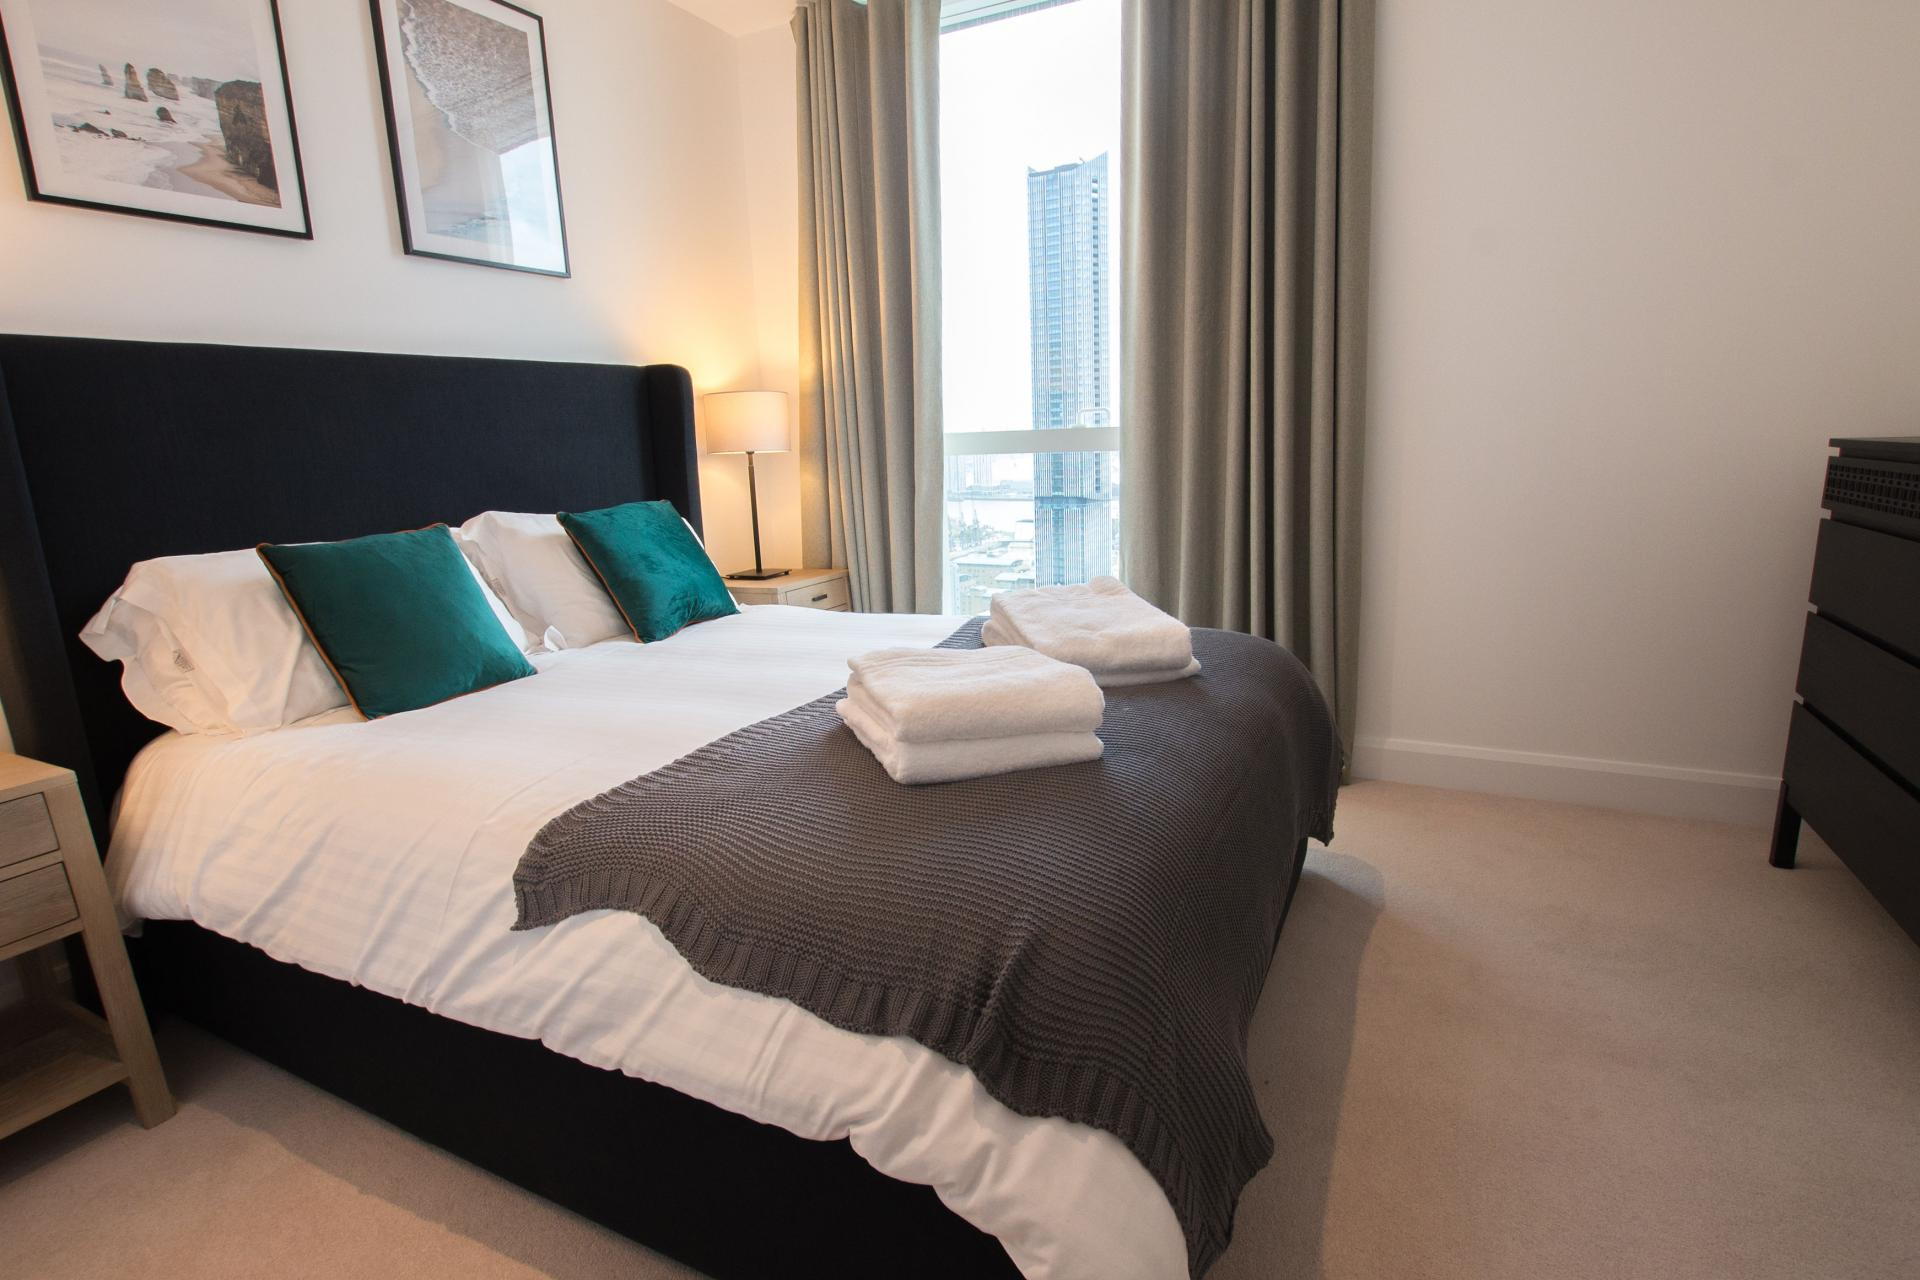 Bedroom at Canary Wharf Apartments By Charles Hope, Canary Wharf, London - Citybase Apartments